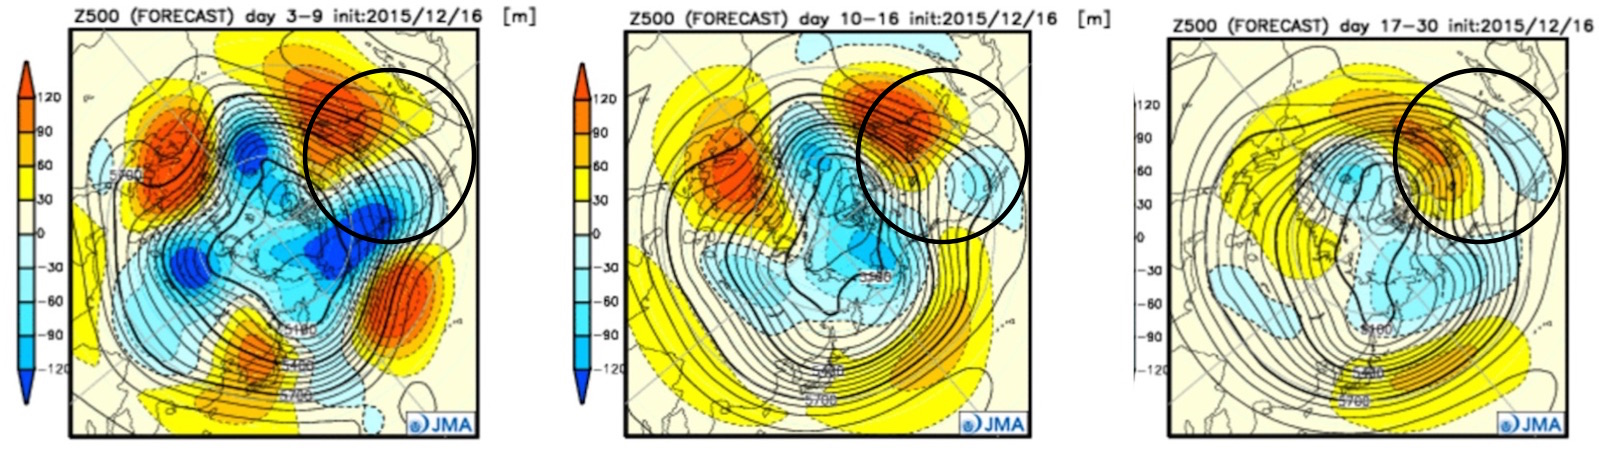 JMA 500mb forecast | Days 3 - 9 (left), days 10 -16 (middle), days 17 - 30 (right), all hold on to the eastern ridge